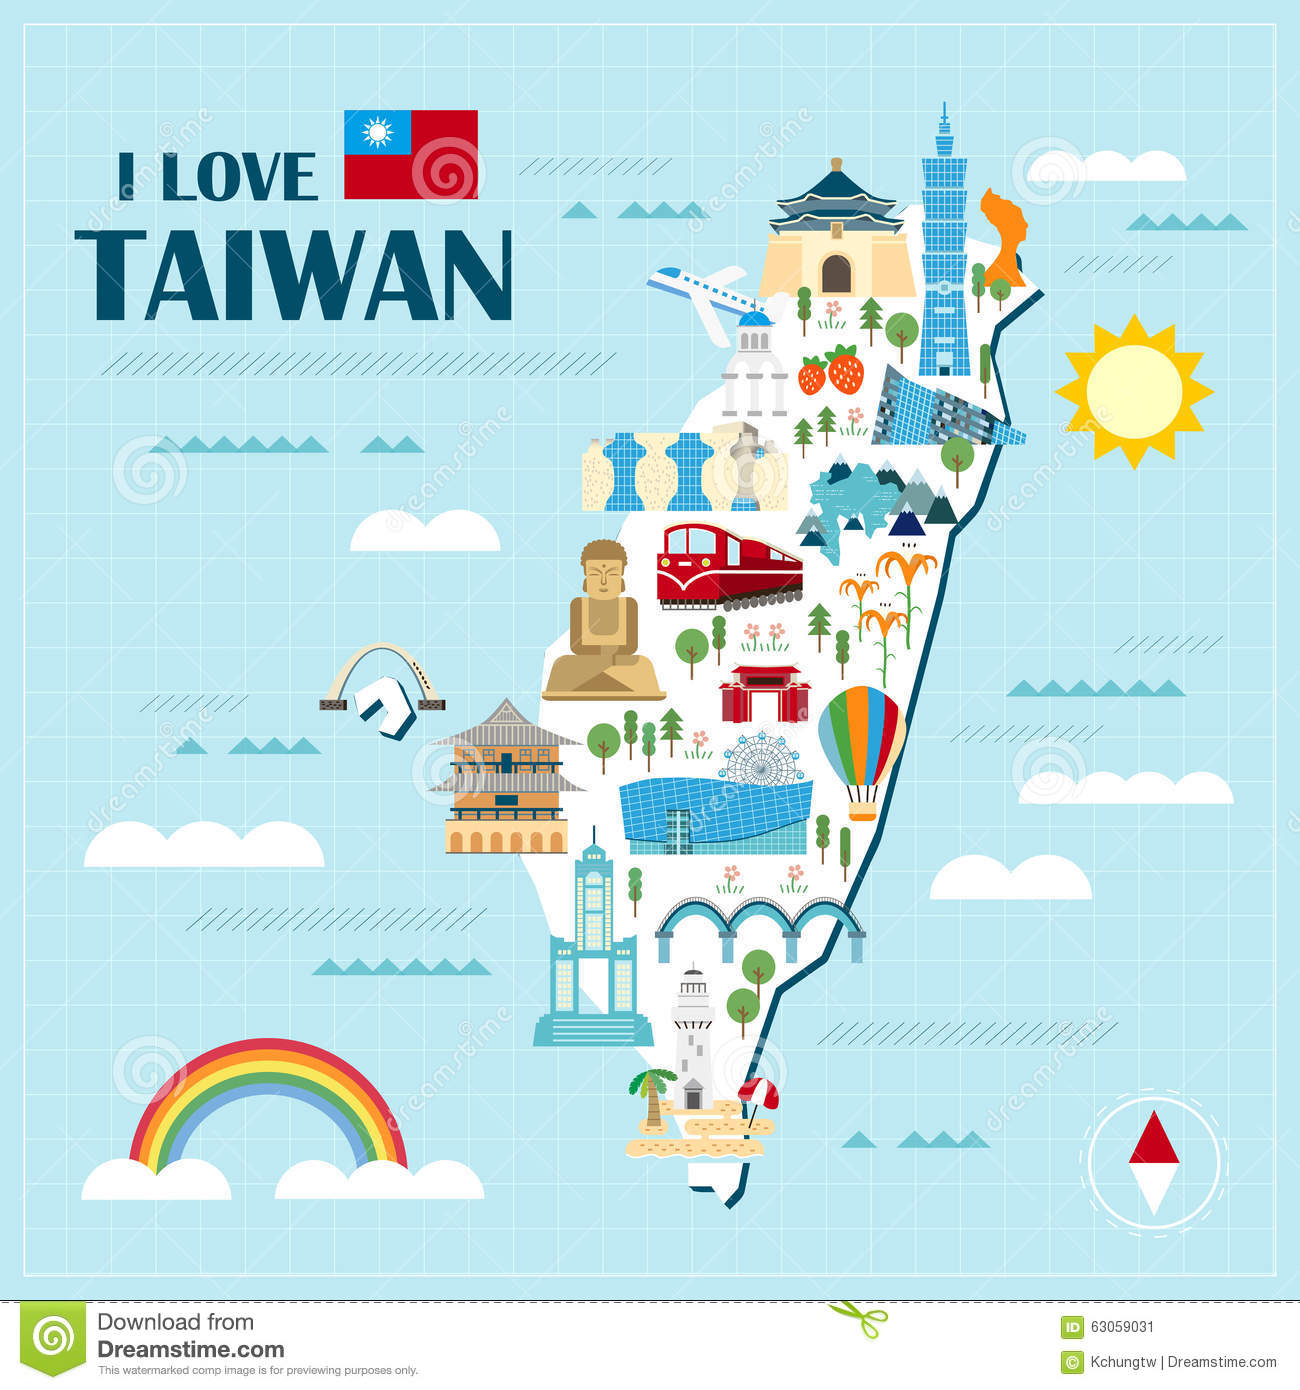 Lovely taiwan travel map stock vector illustration of grid 63059031 lovely taiwan travel map grid culture gumiabroncs Image collections